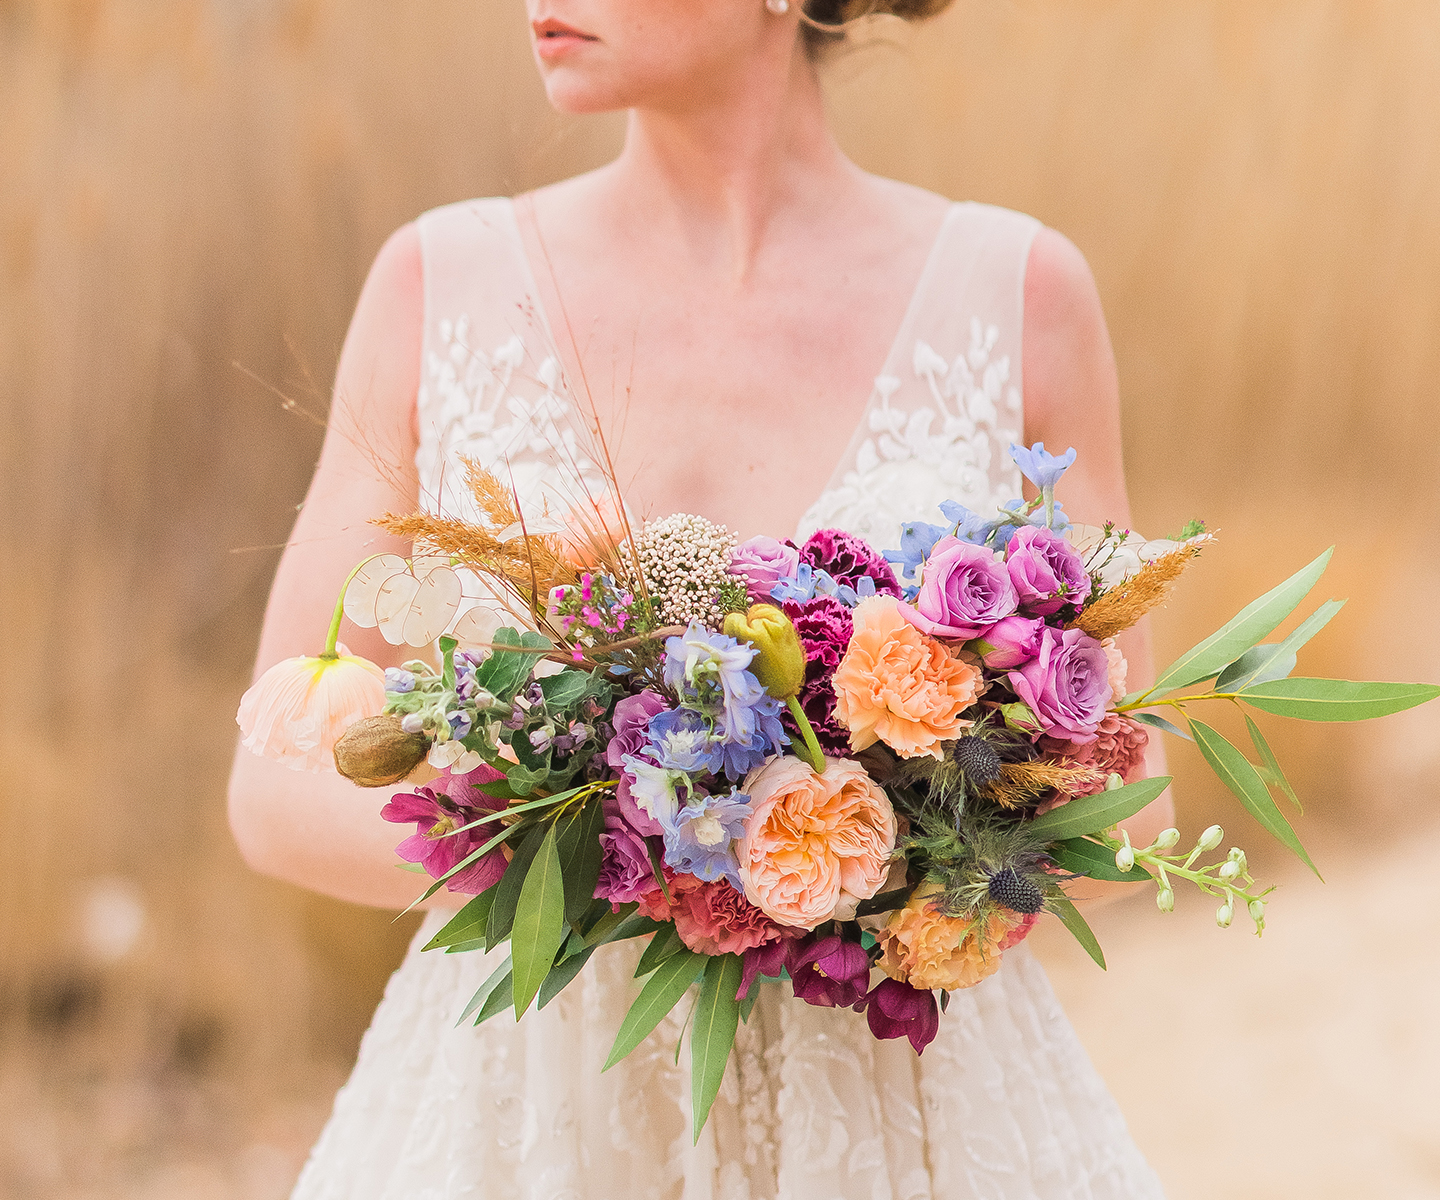 Bridal Bouquet Inspiration for Spring: 12 of the Prettiest Bouquets We've Seen This Spring in Alberta and the Rockies - Therese Lopez Florals on The Bronte Bride